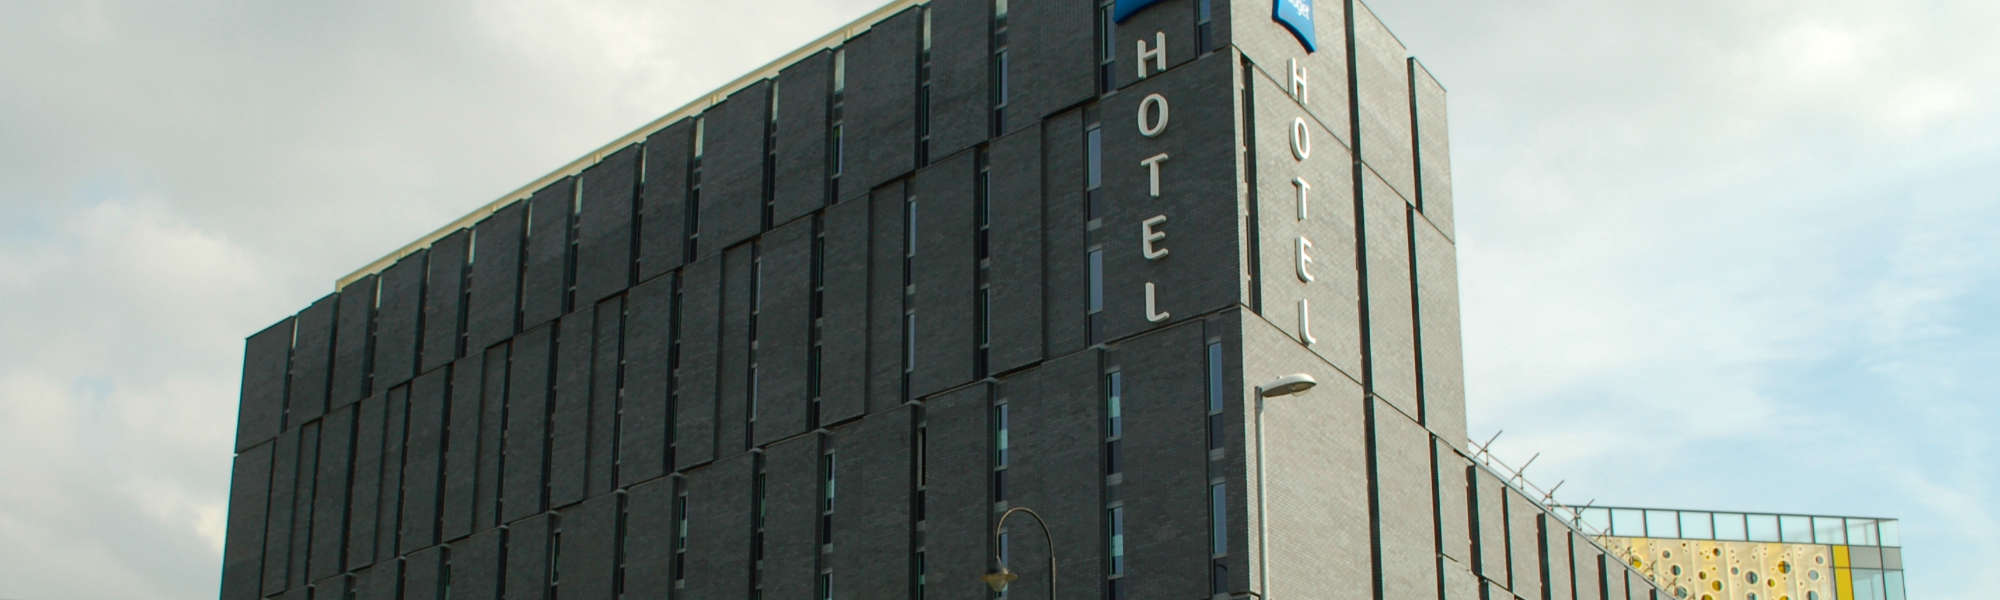 PCEs Etap Hotel construction project in Manchester